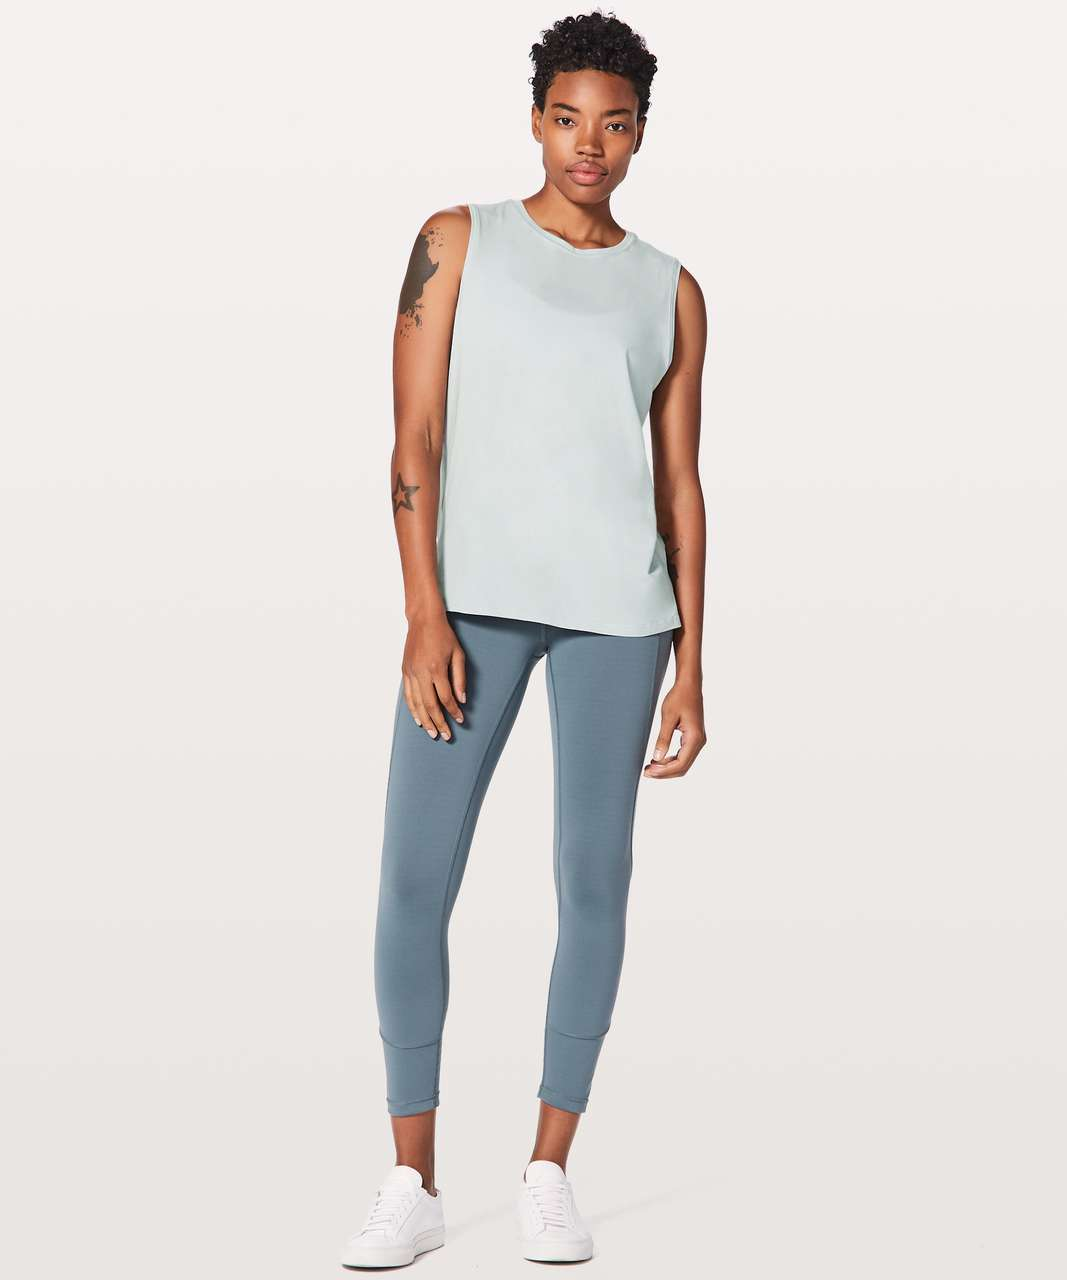 Lululemon Love Sleeveless Tank - Storm Blue